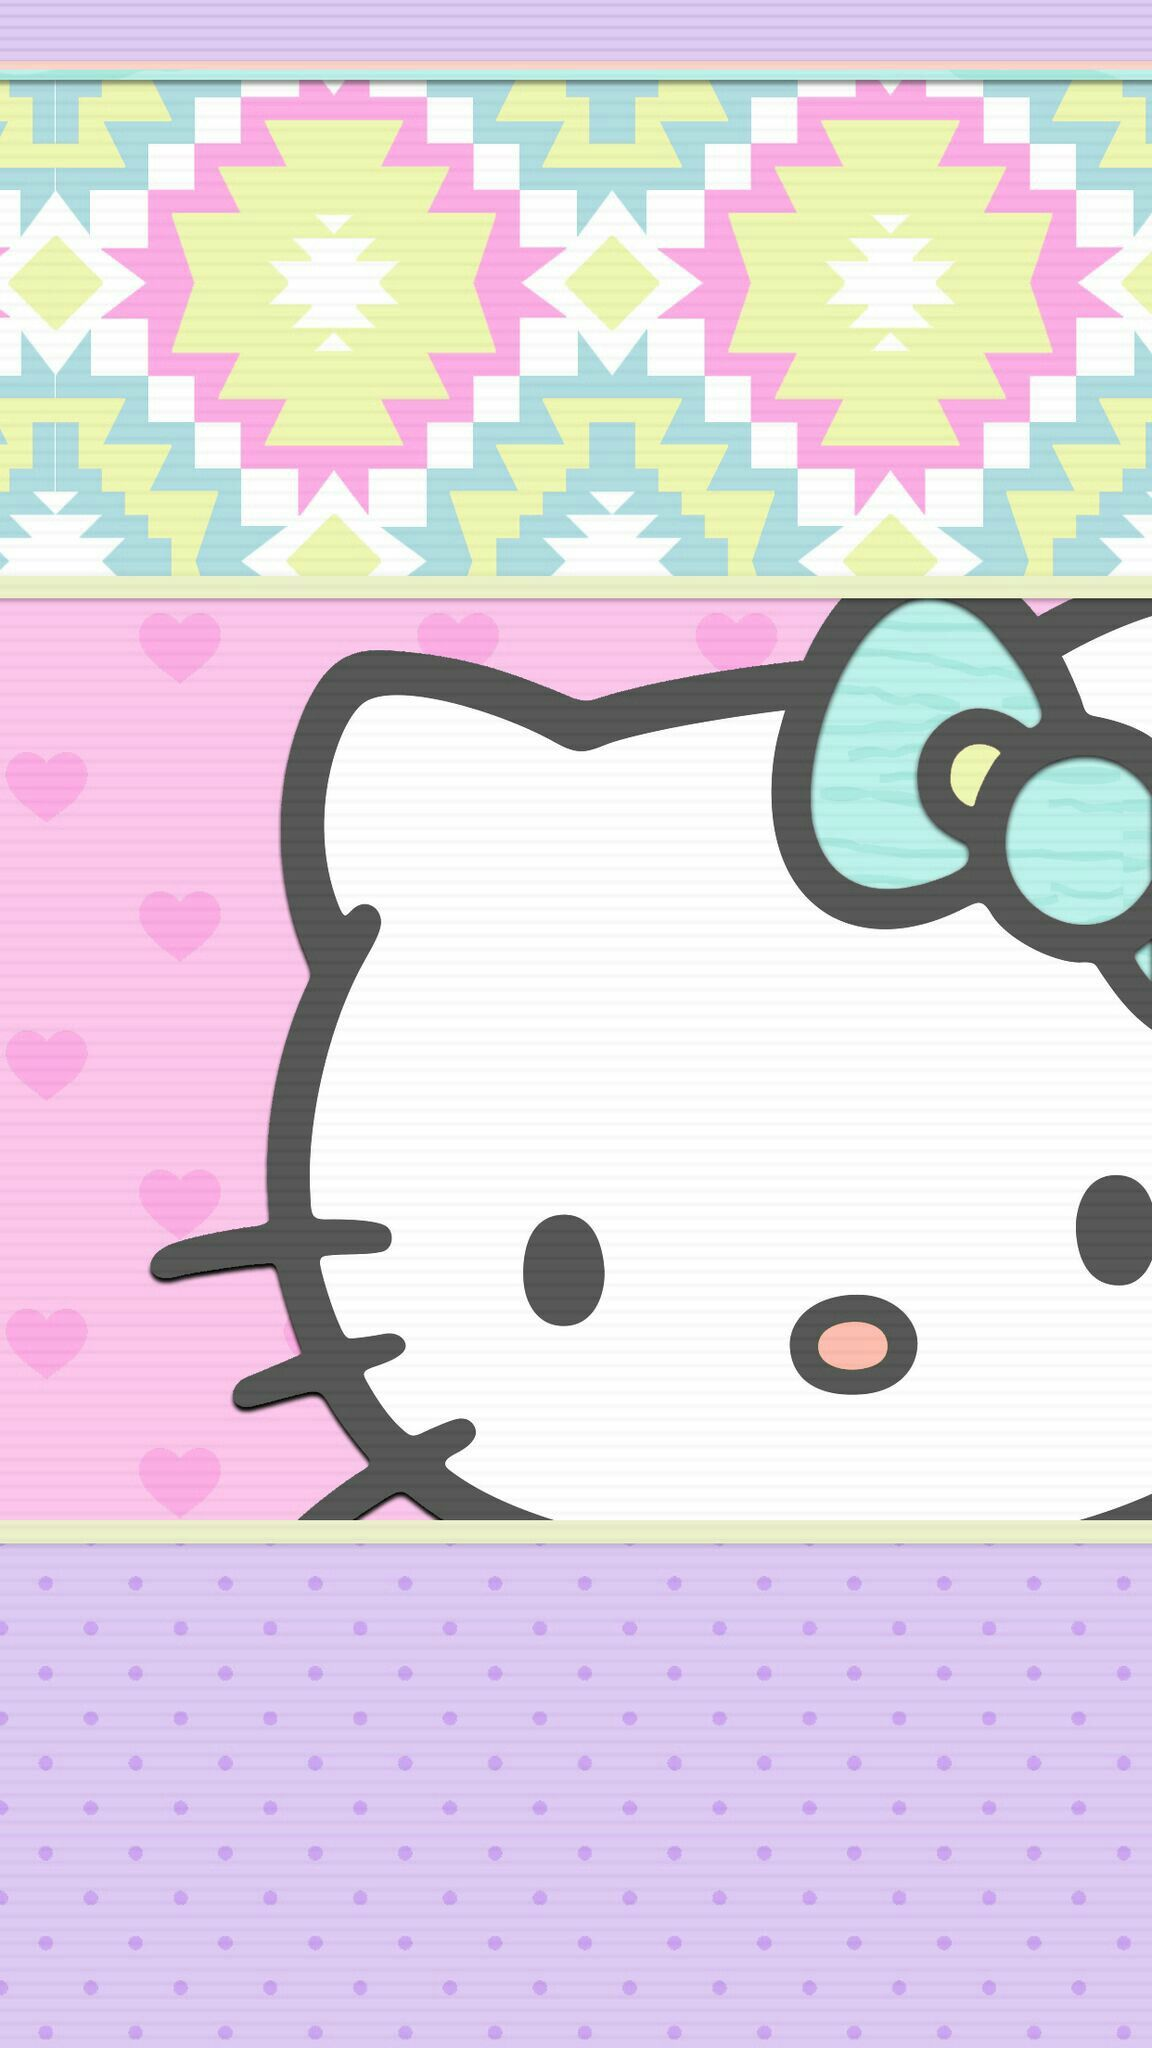 Iphone Wall Hk Tjn Hello Kitty Backgrounds Hello Kitty Pictures Hello Kitty Wallpaper